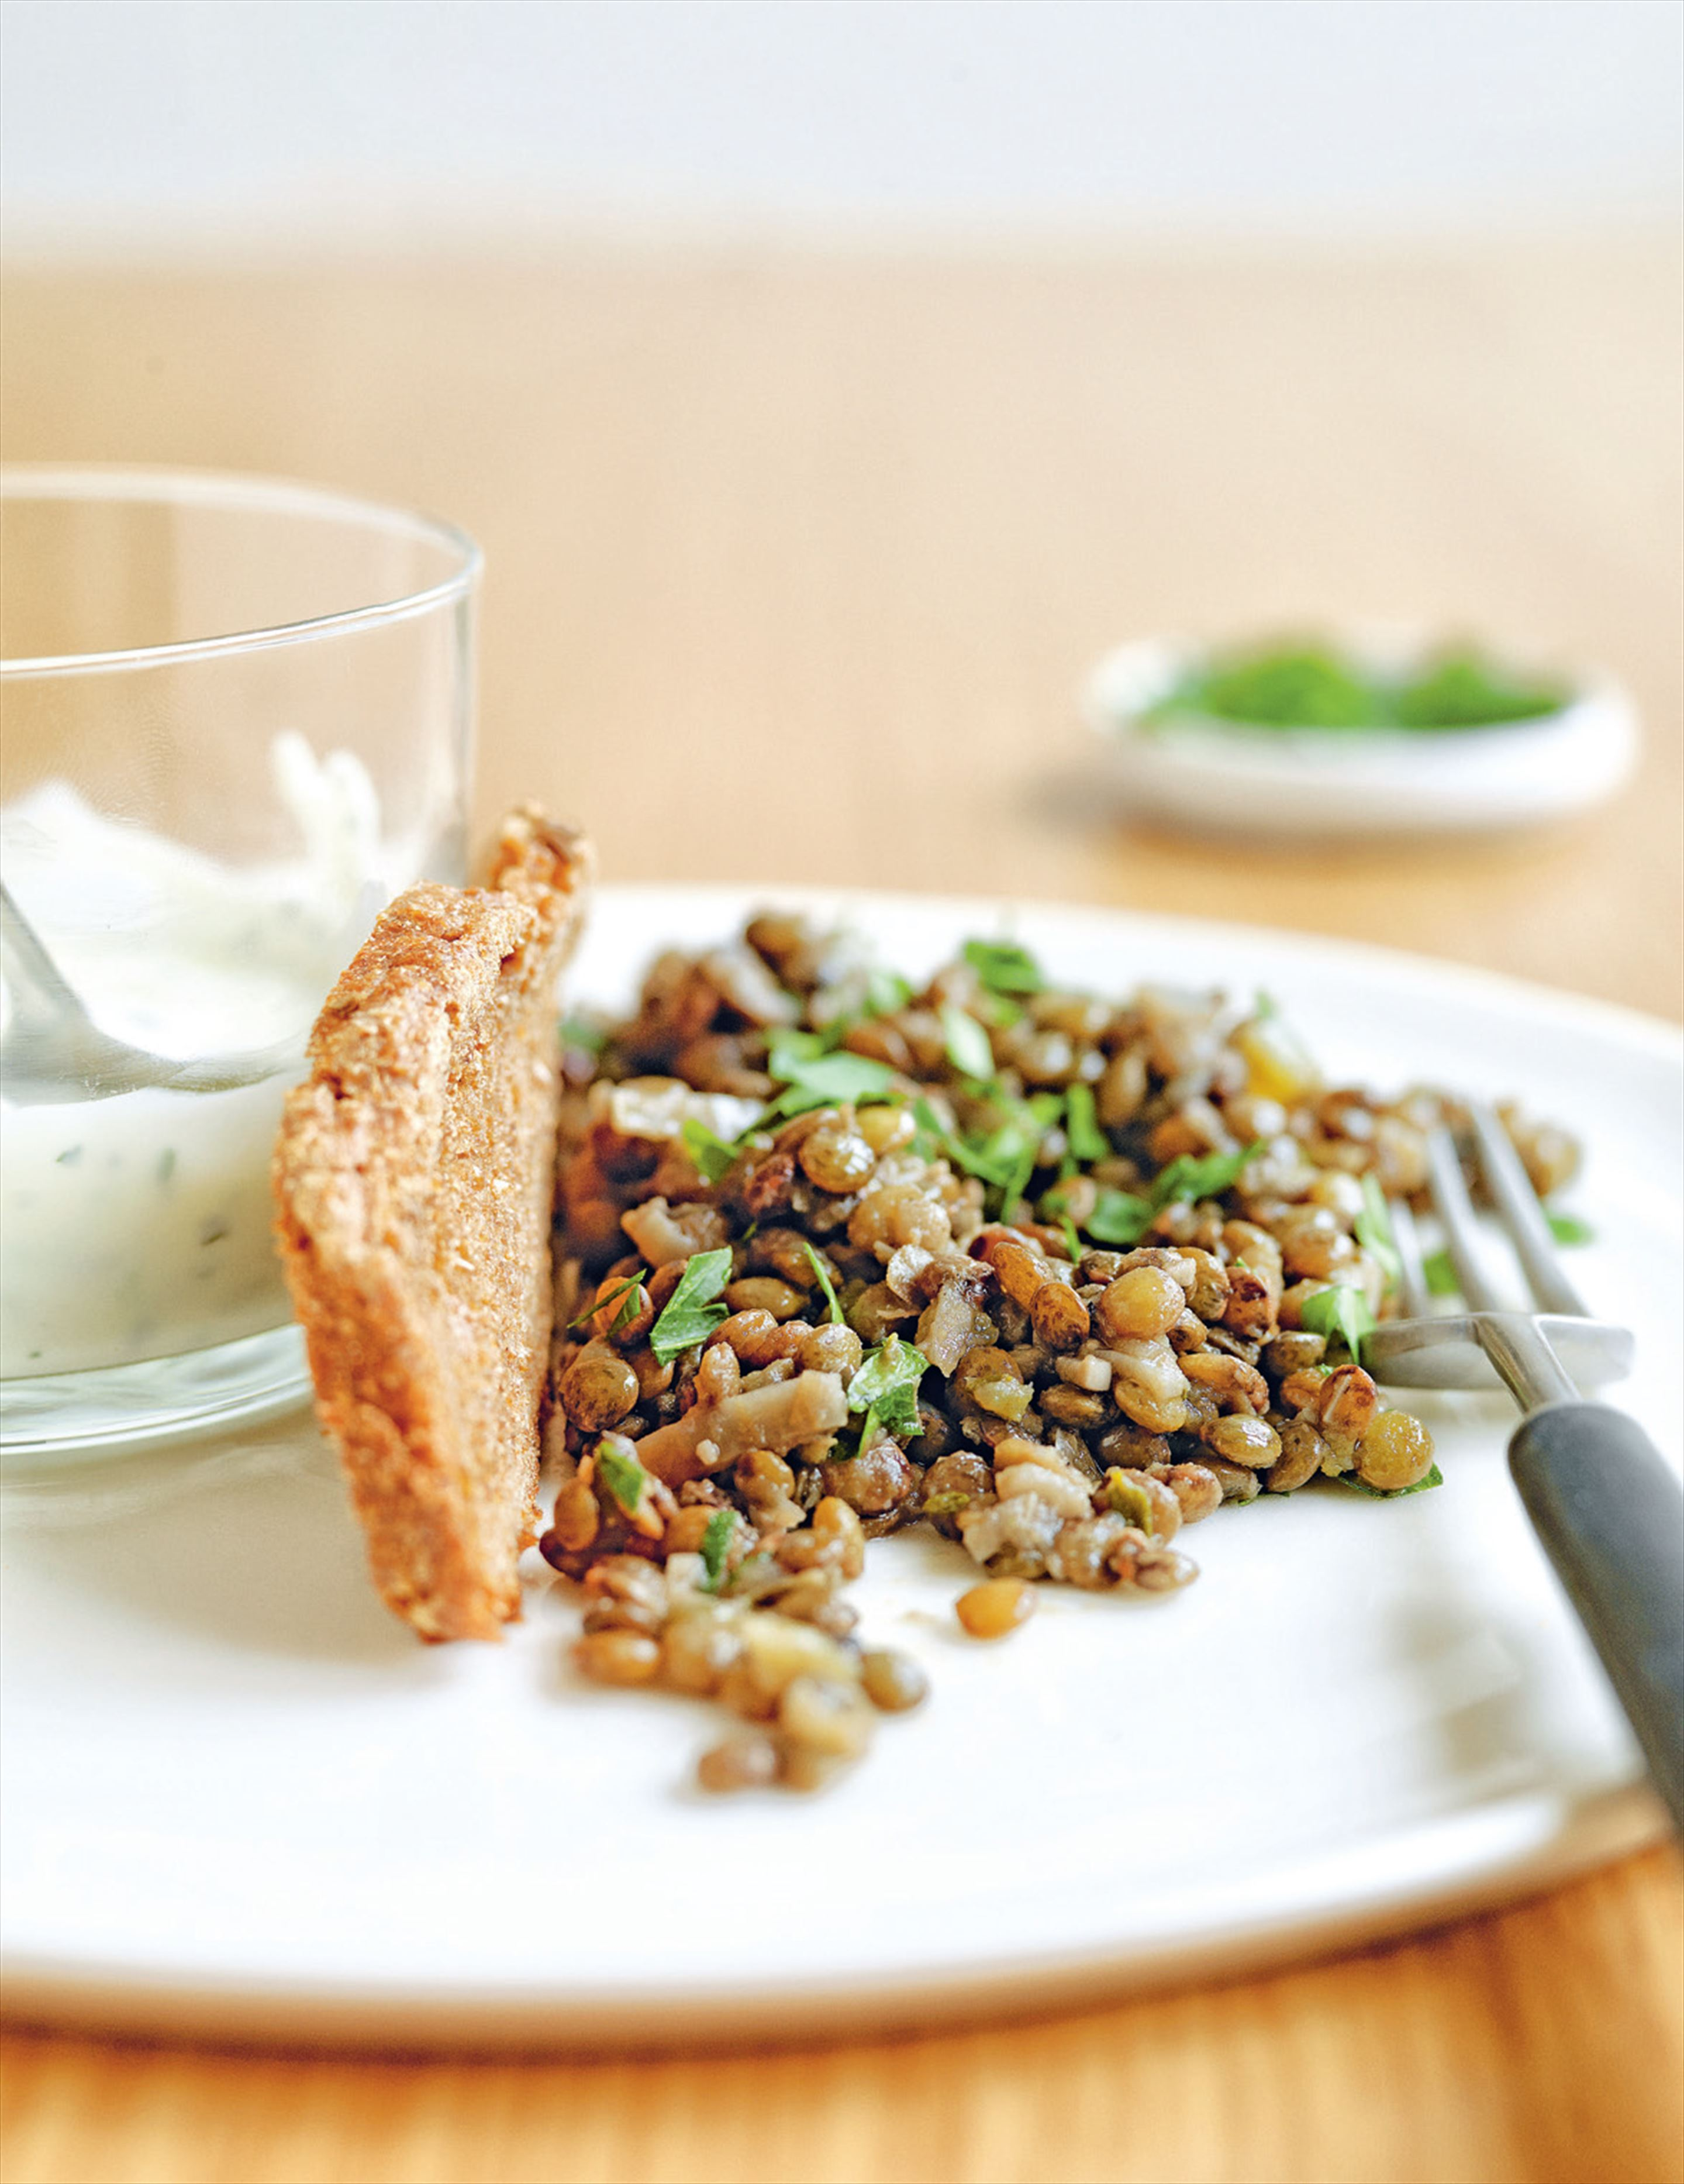 Cervelle de canut with lentil salad